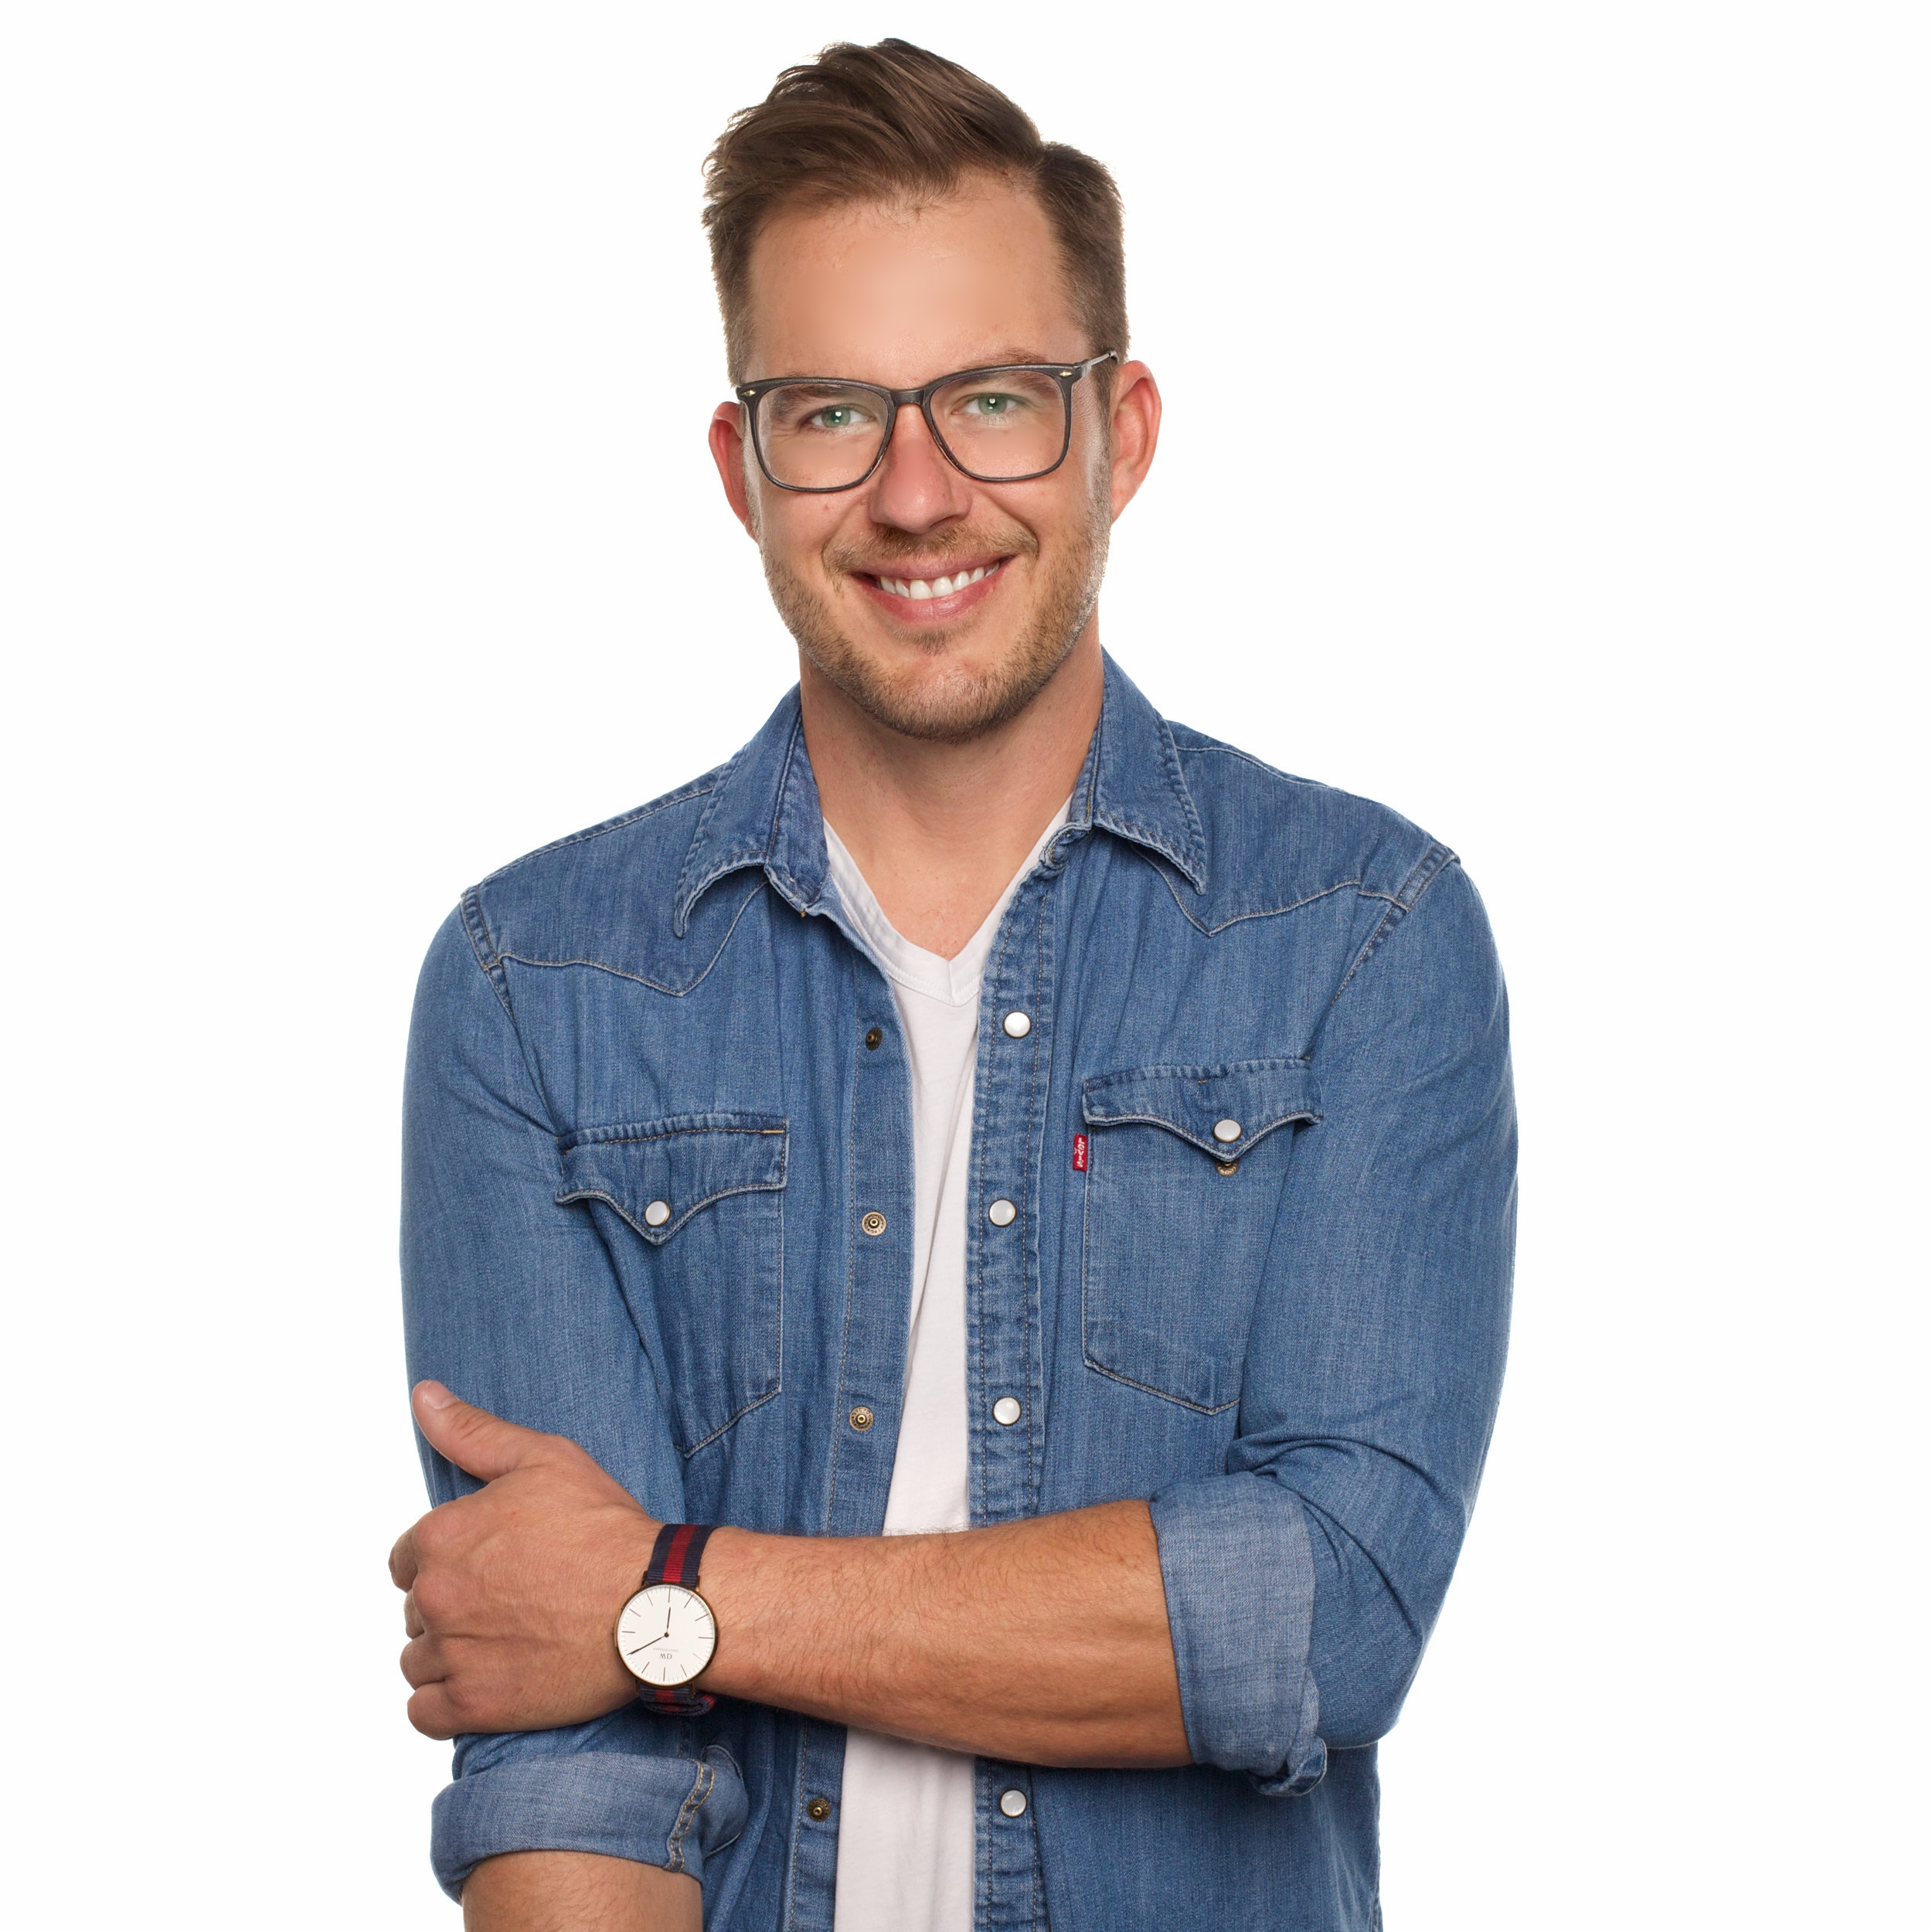 Ryan DavidsonLicensed, Insured & BondedHome Inspector - ryan@housetohomeyyc.com | 403.998.6749Home Inspection Business #346533Home Inspector #346534APHIS Alberta Member (FORMERLY cahpi)level I Thermography Certified - FLIR